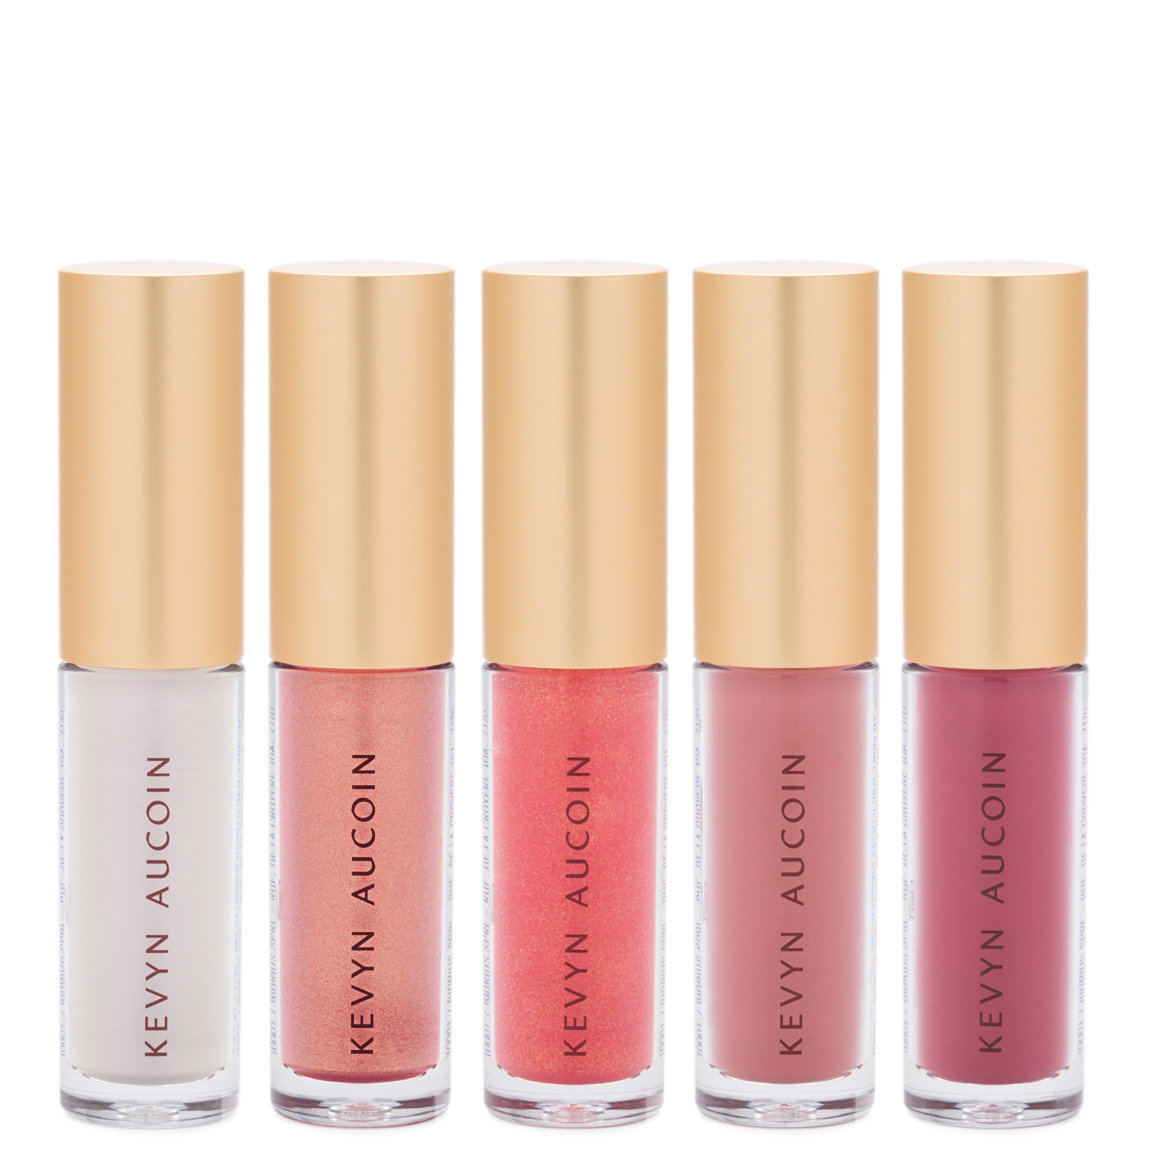 Kevyn Aucoin Nude Pop - The Molten Lip Color Mini Collection product smear.